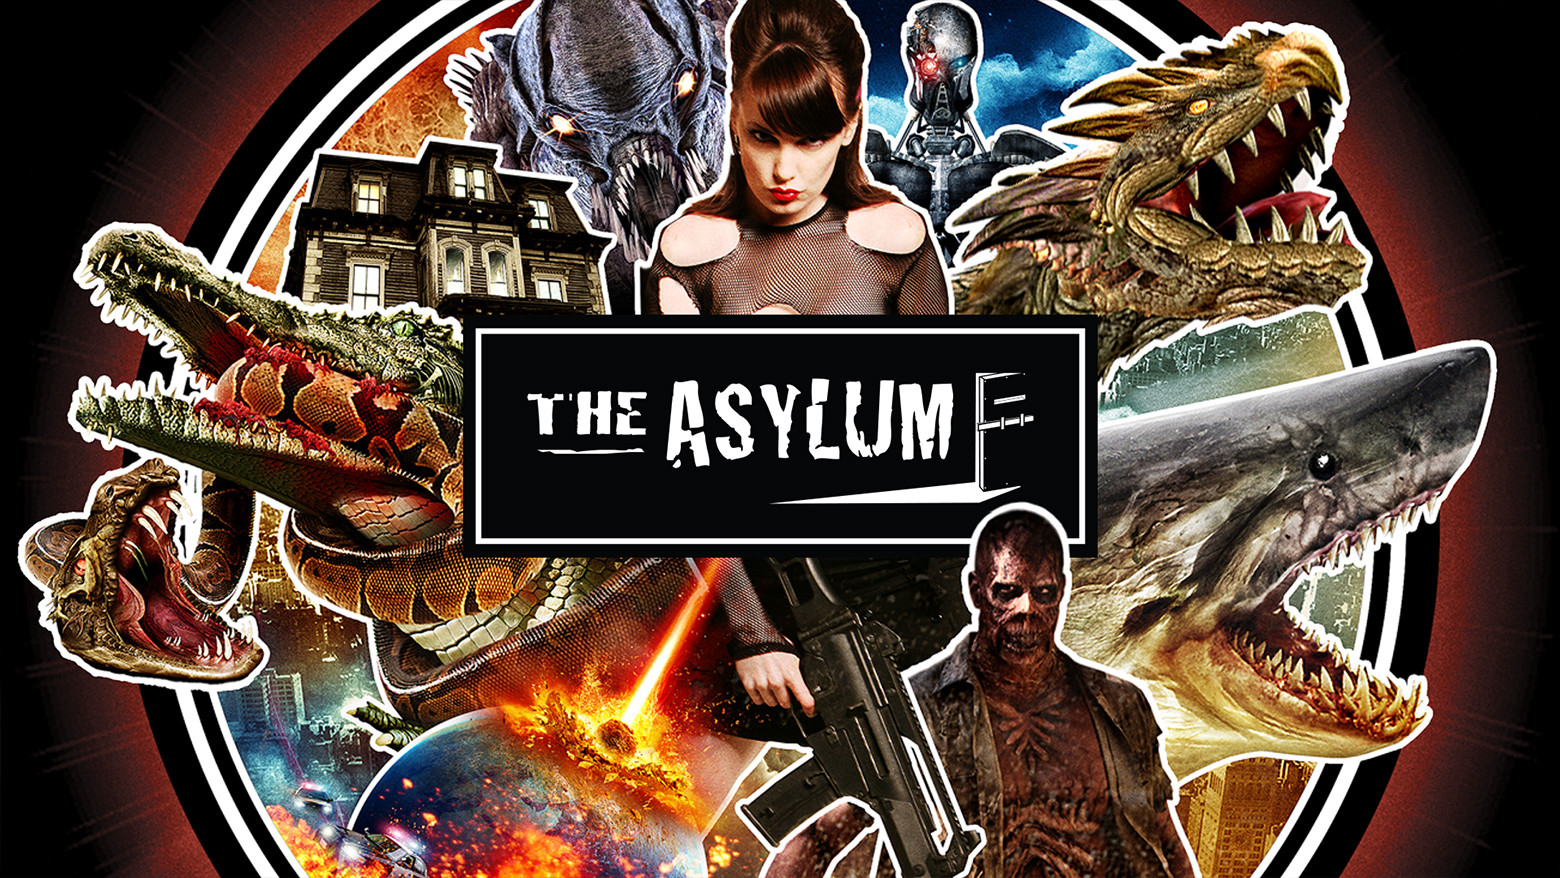 The Asylum_featuredImage.jpg